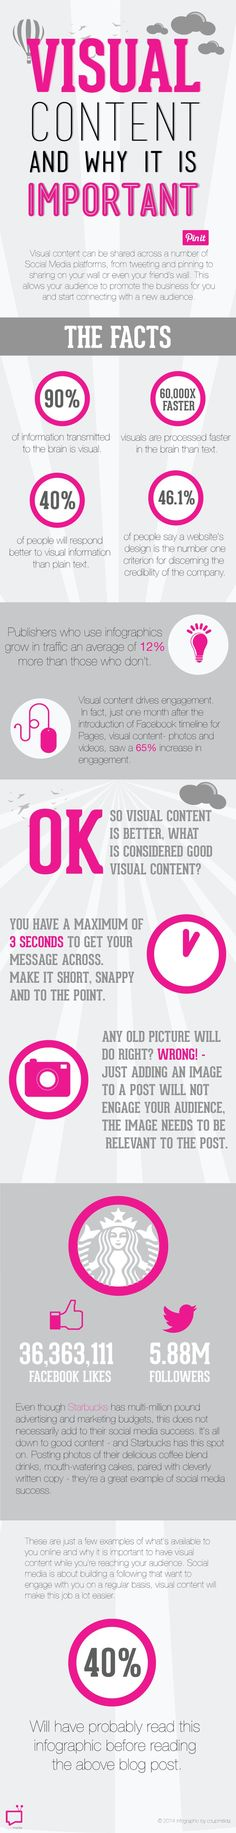 Why Visual Content is important #visualstorytelling